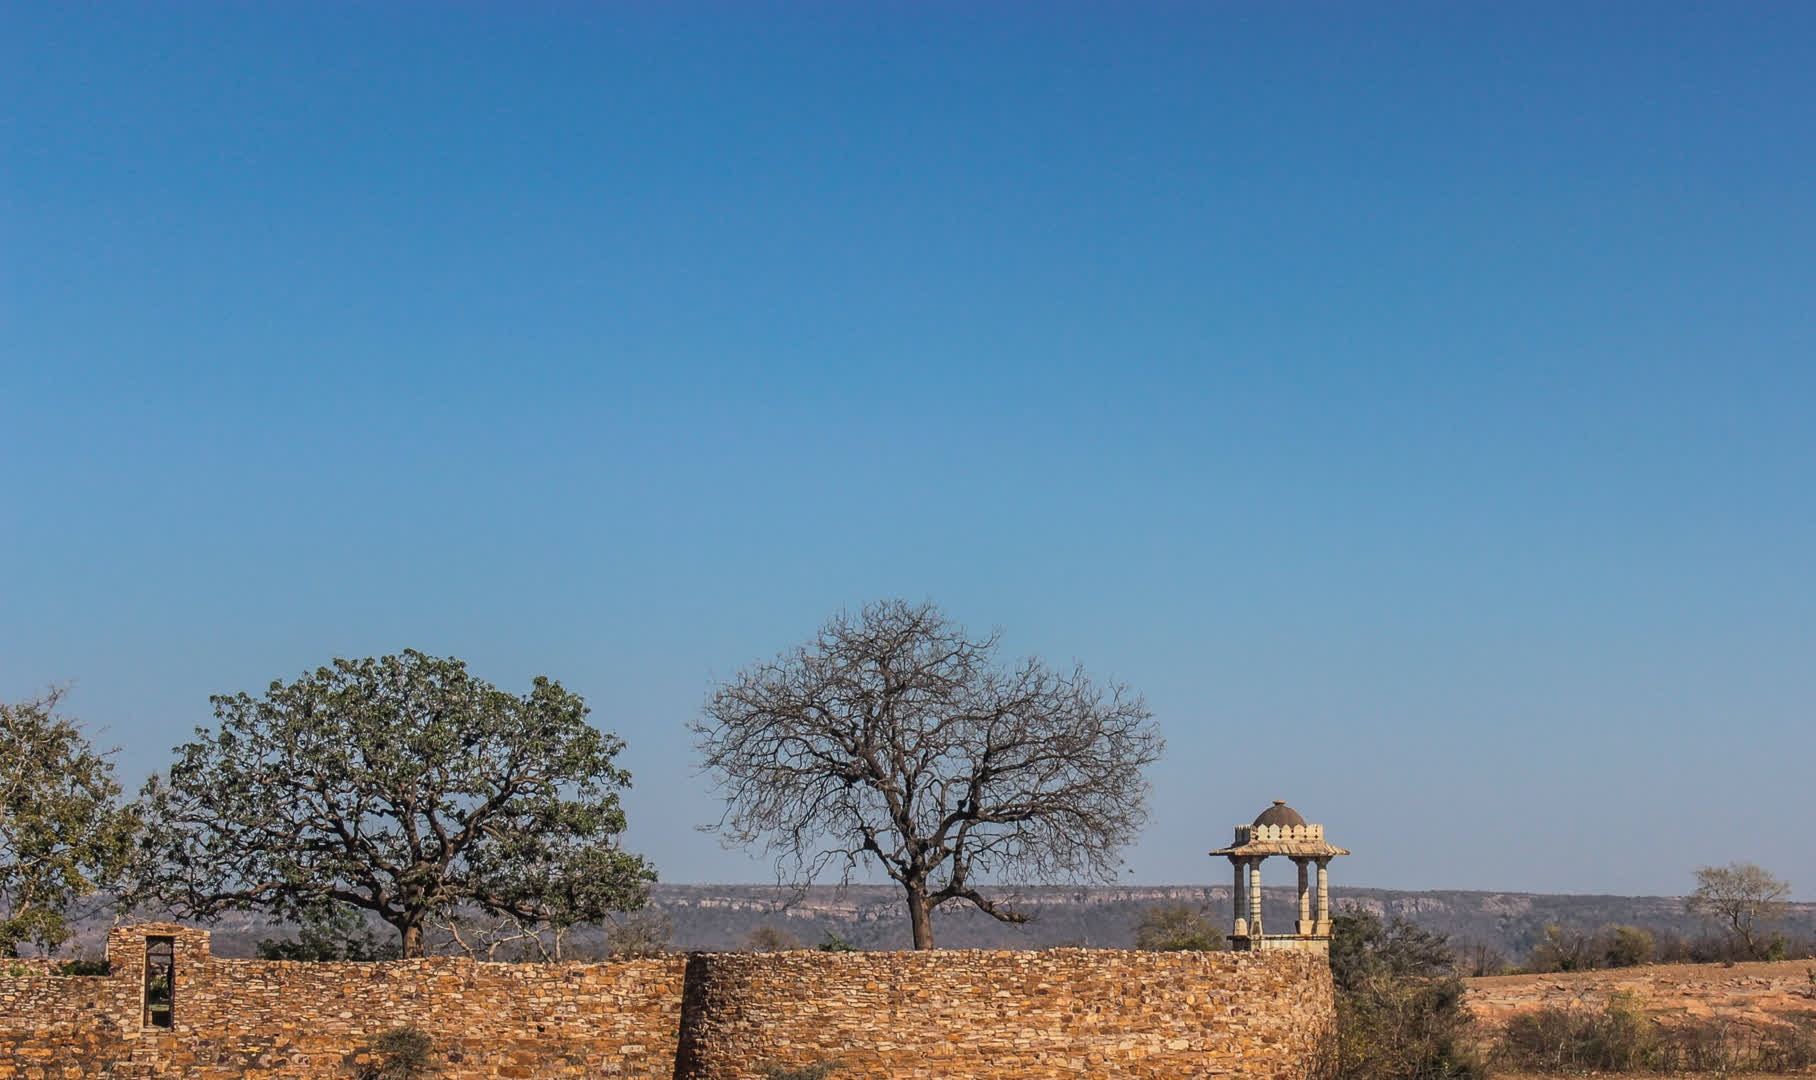 walls that have protected the fort